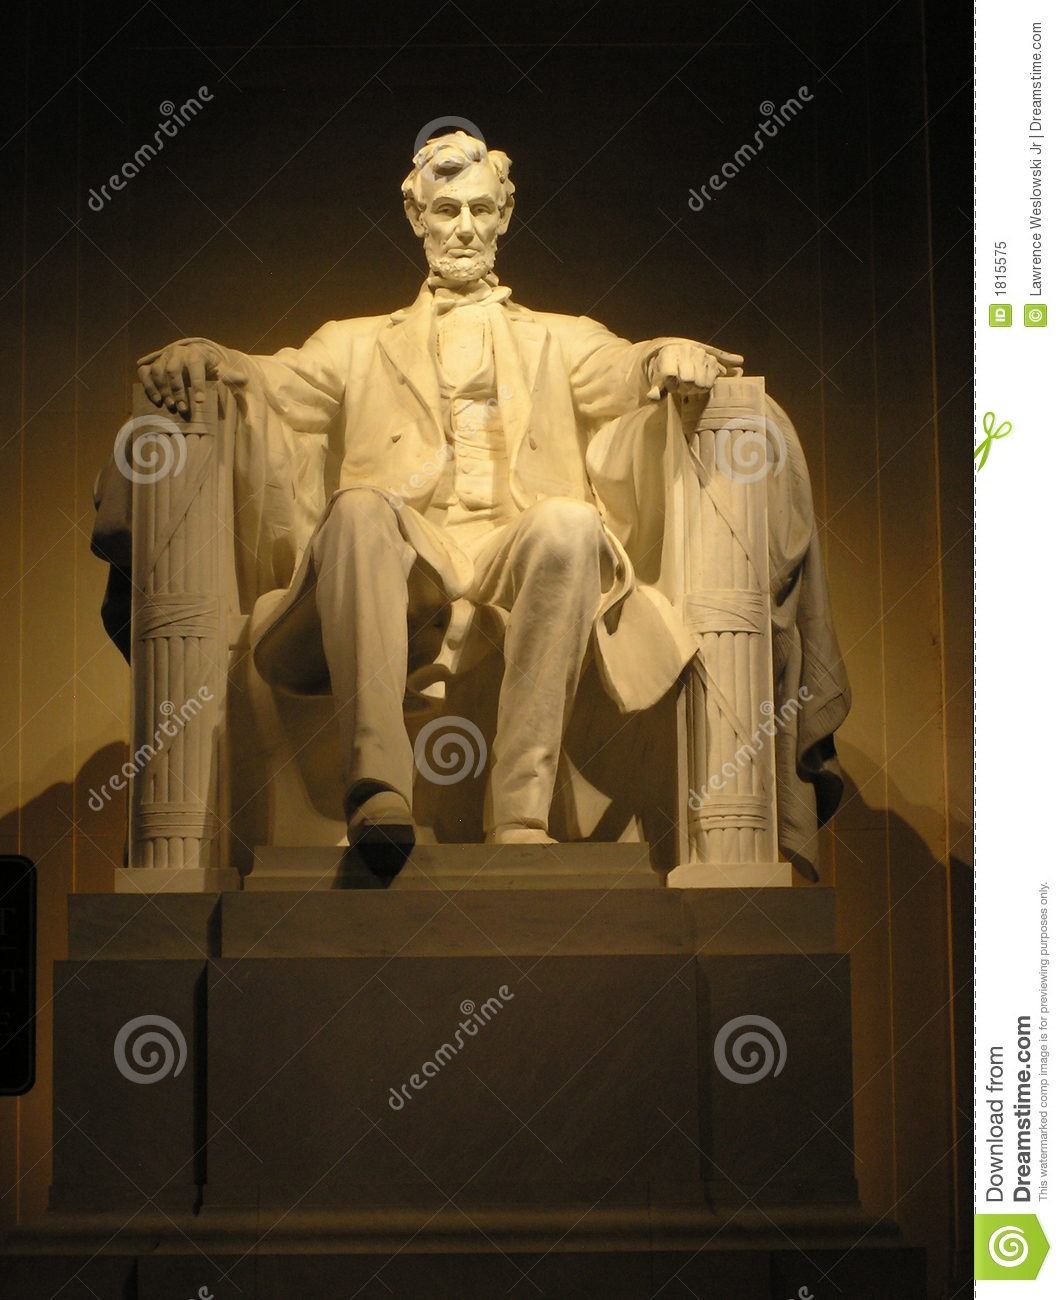 Lincoln s Statue at Night